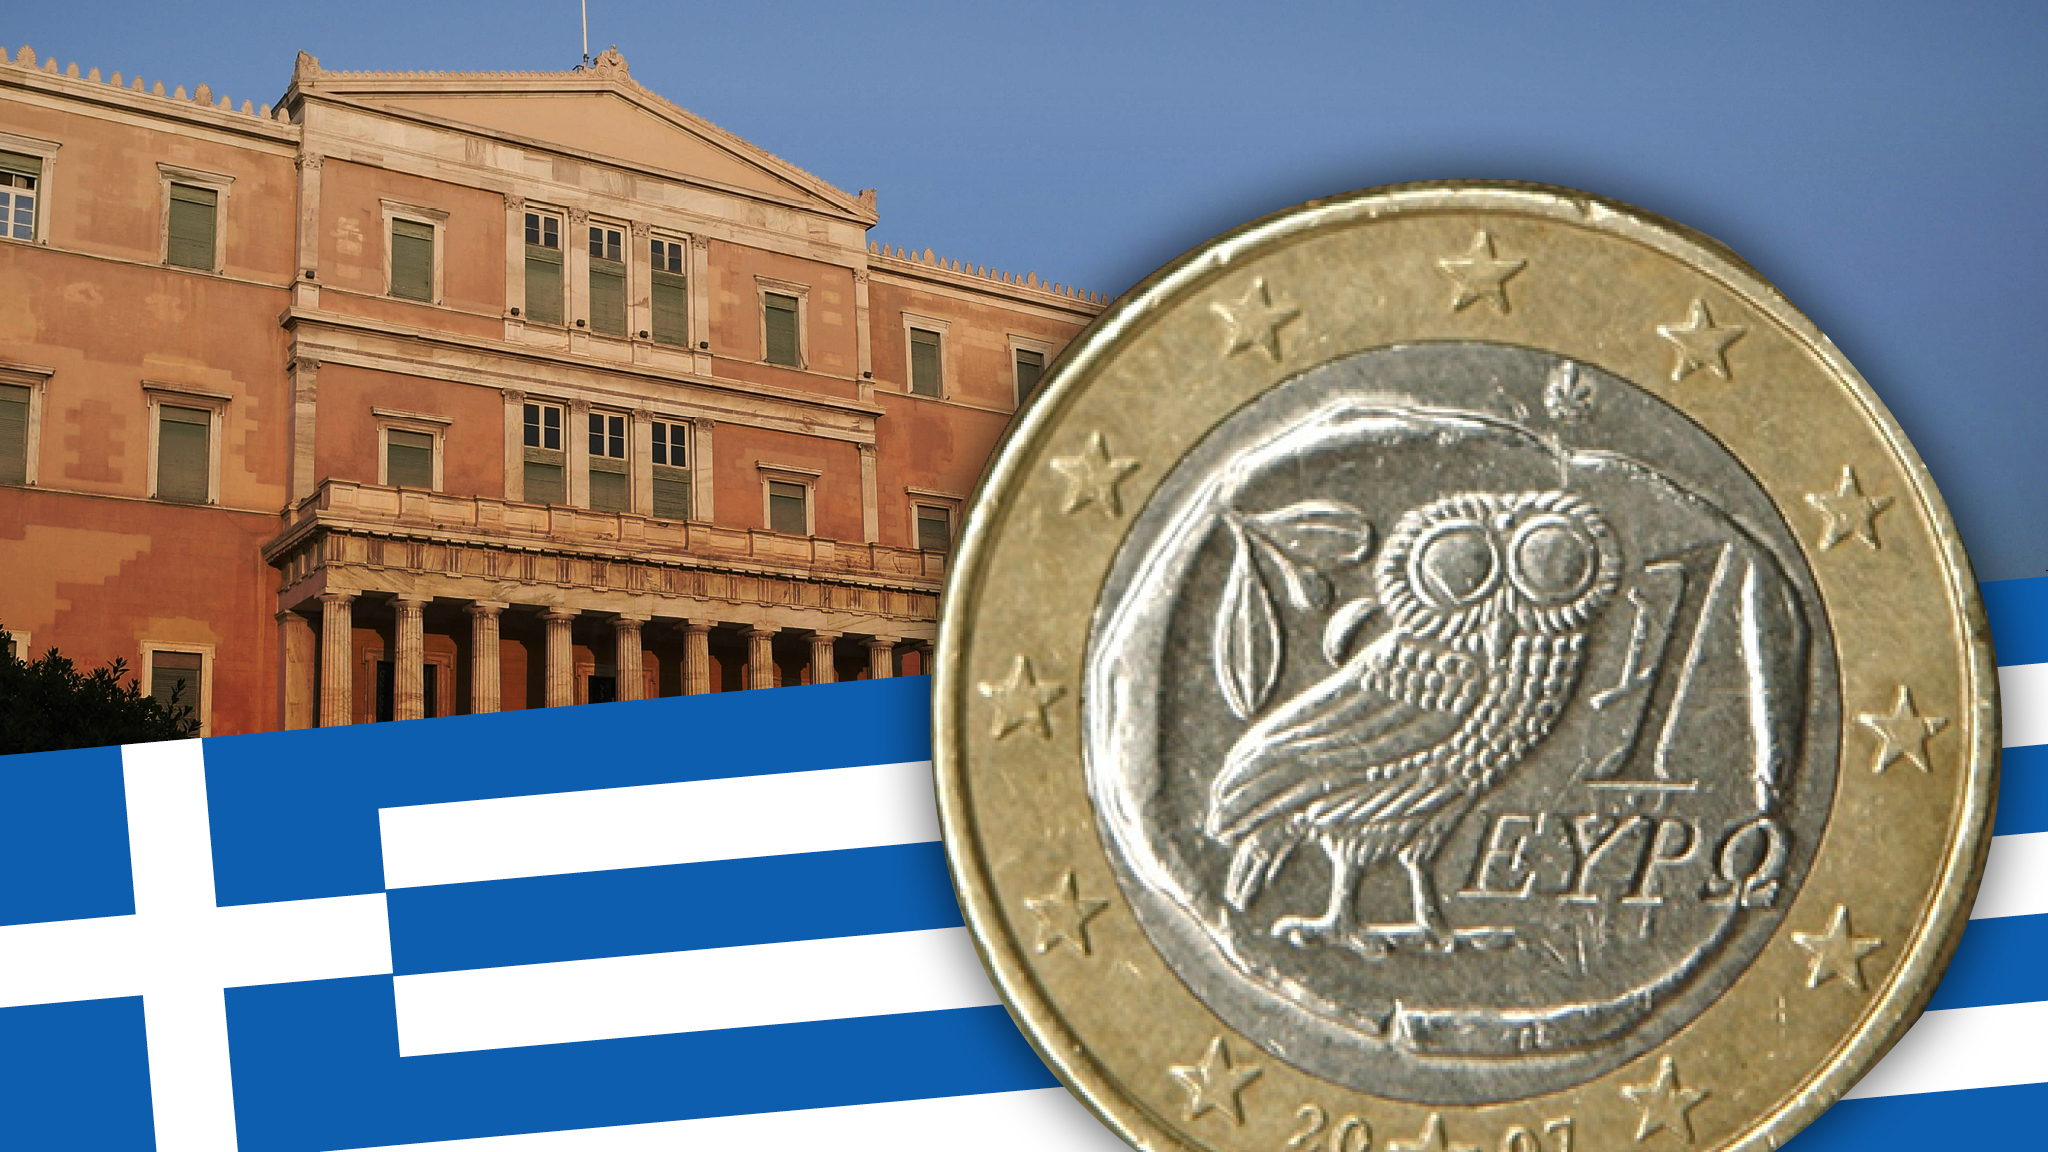 Financial Times: Yield-seeking investors overcome fears to hurry back to Greece